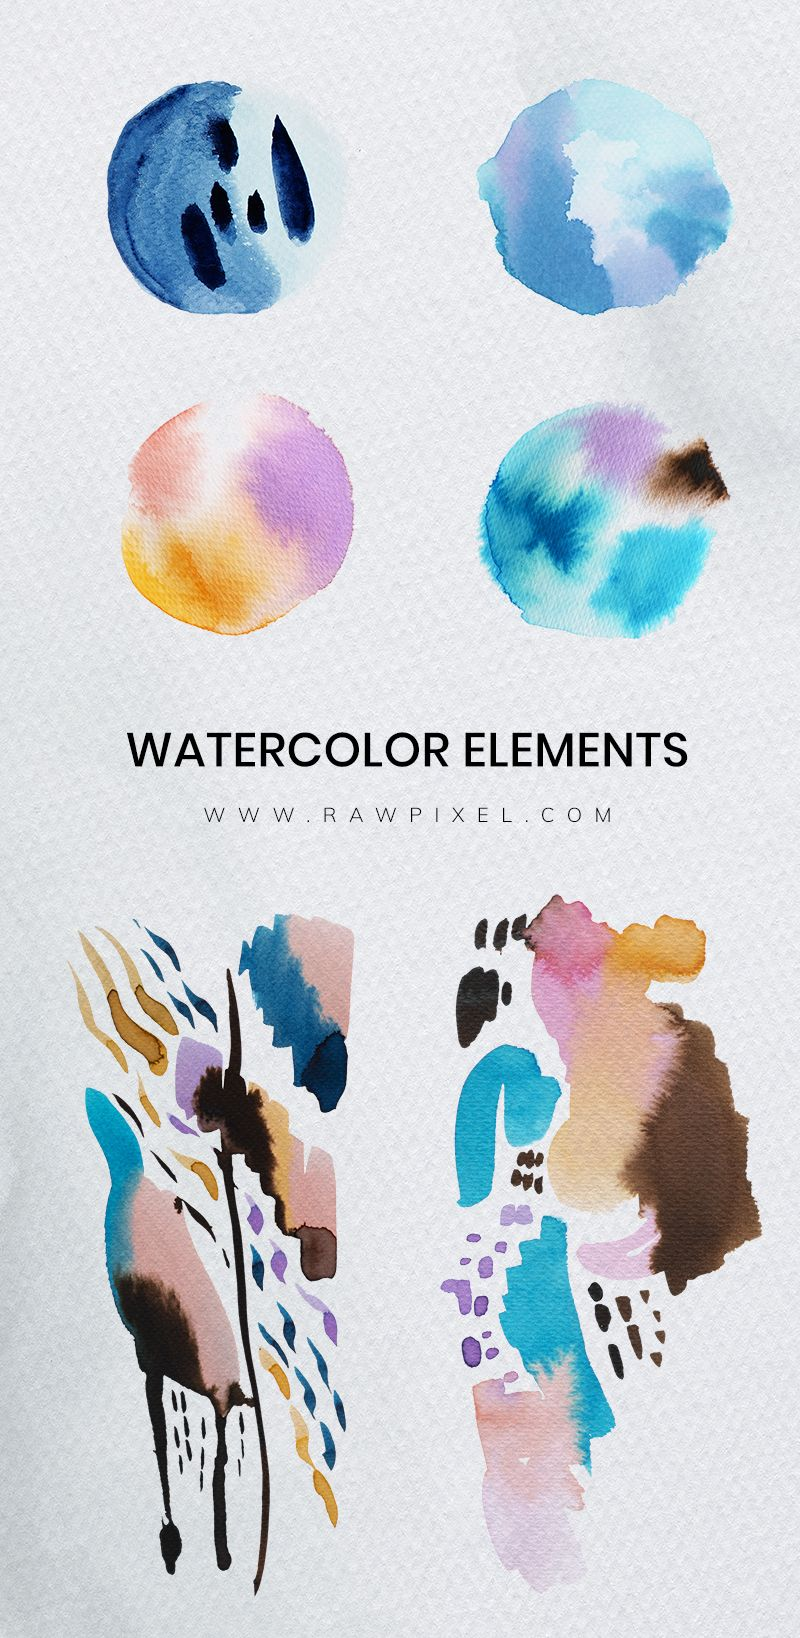 Find Beautiful Free And Premium Royalty Free Watercolor Elements